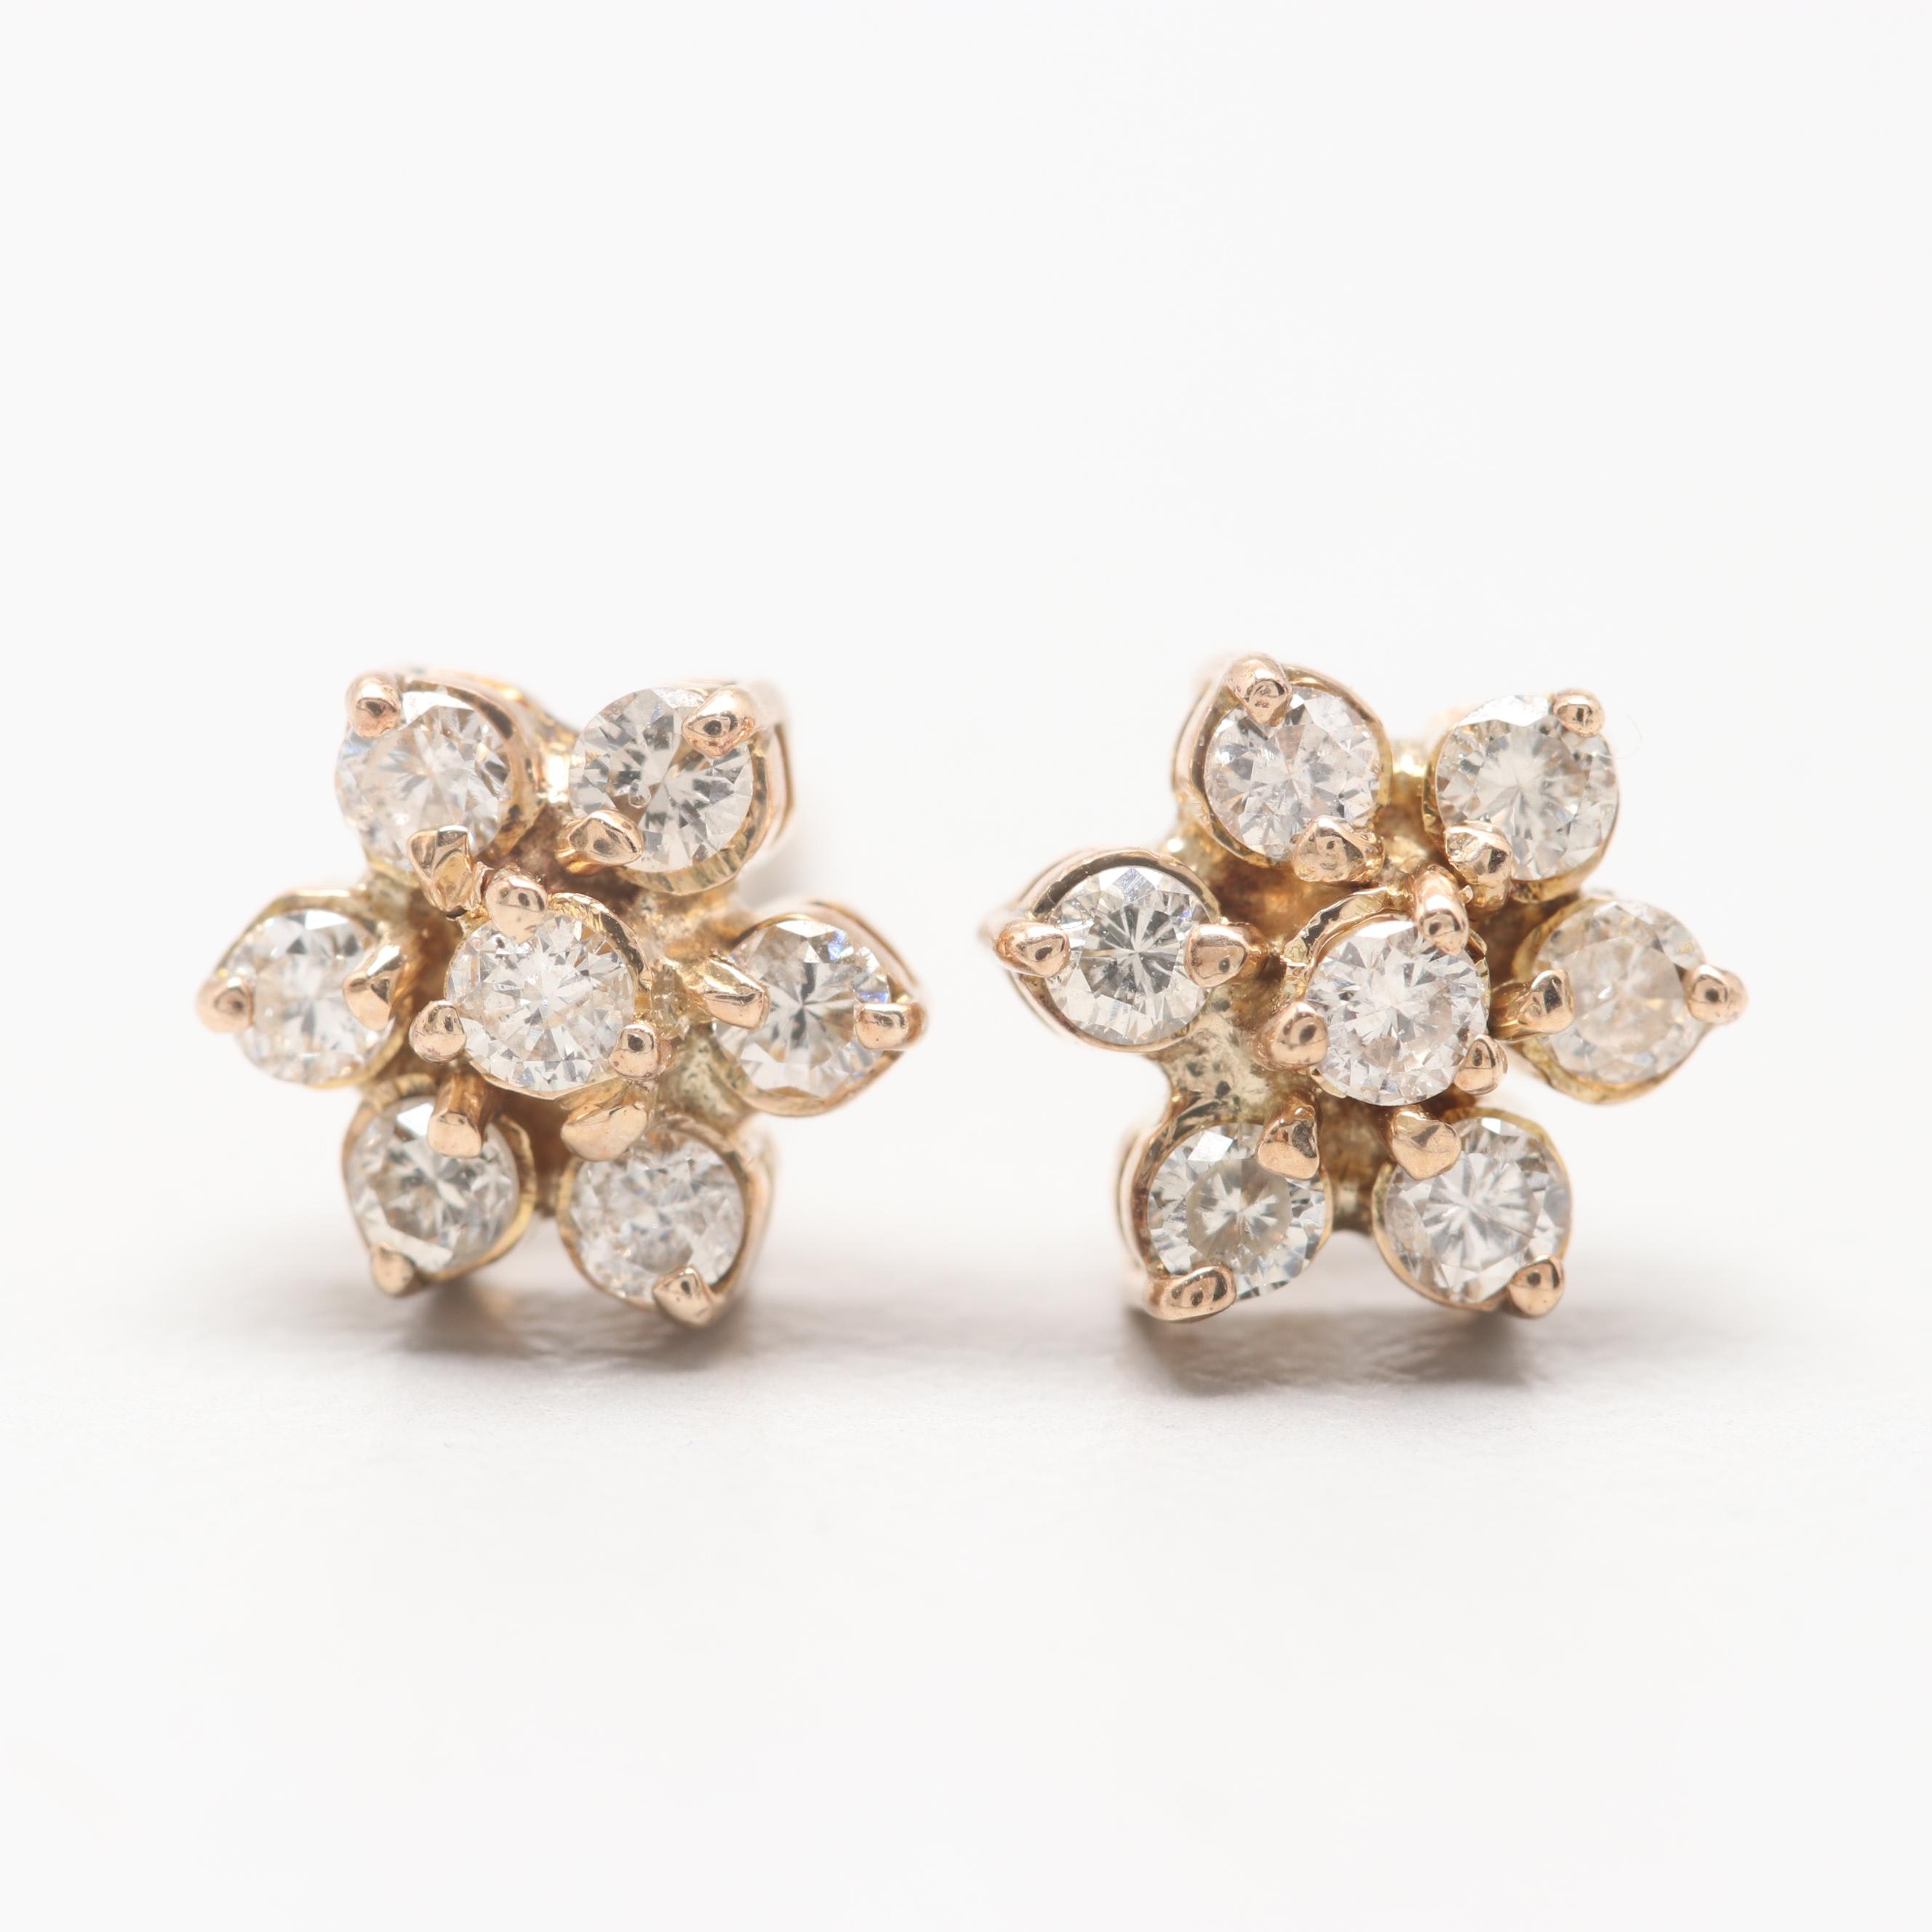 10K Yellow Gold Diamond Flower Motif Earrings